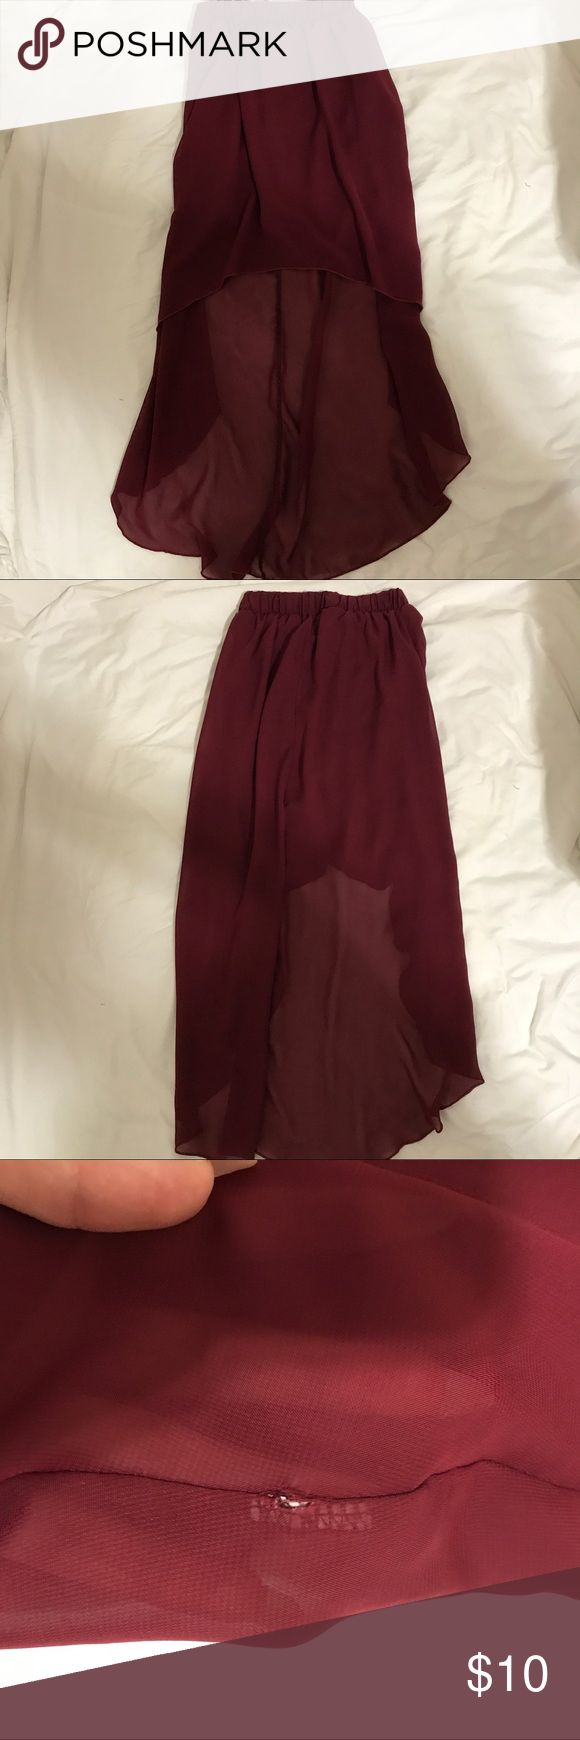 ❗️FINAL SALE ❗️Burgundy maxi skirt Short from the from, long from the back. Small rip by tag, not noticeable at all. Skirts Maxi